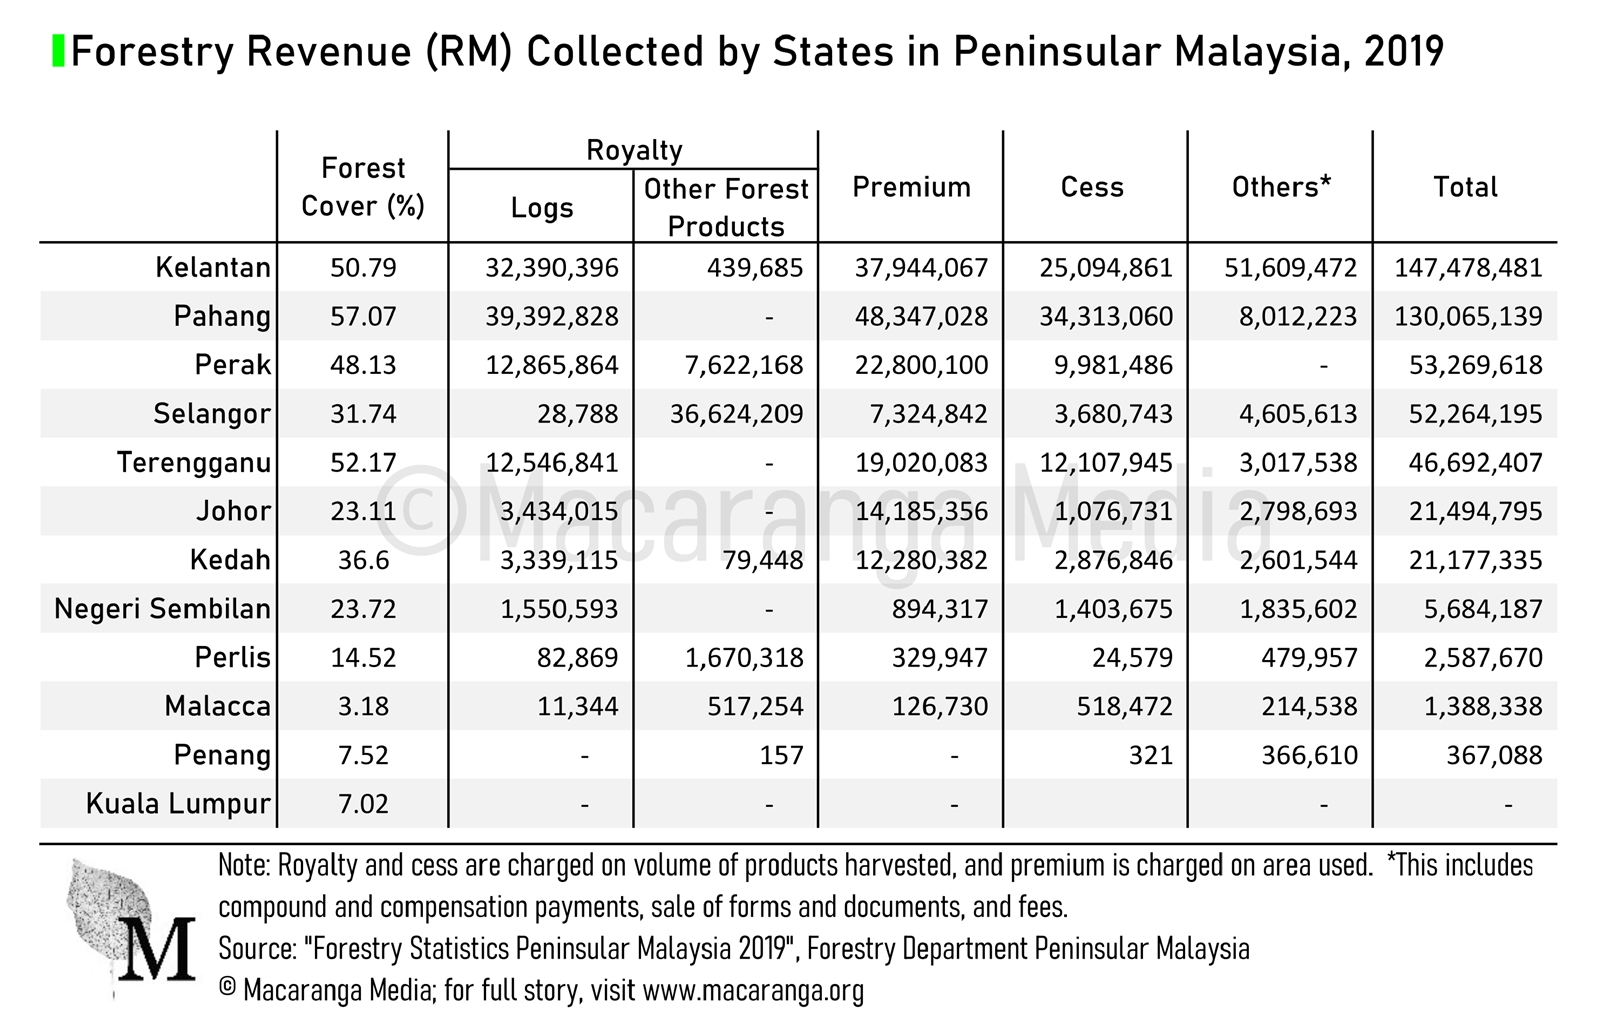 Most states in Peninsular Malaysia collected 20 to more than 100 hundred ringgit in forestry revenue in 2019 (Macaranga)